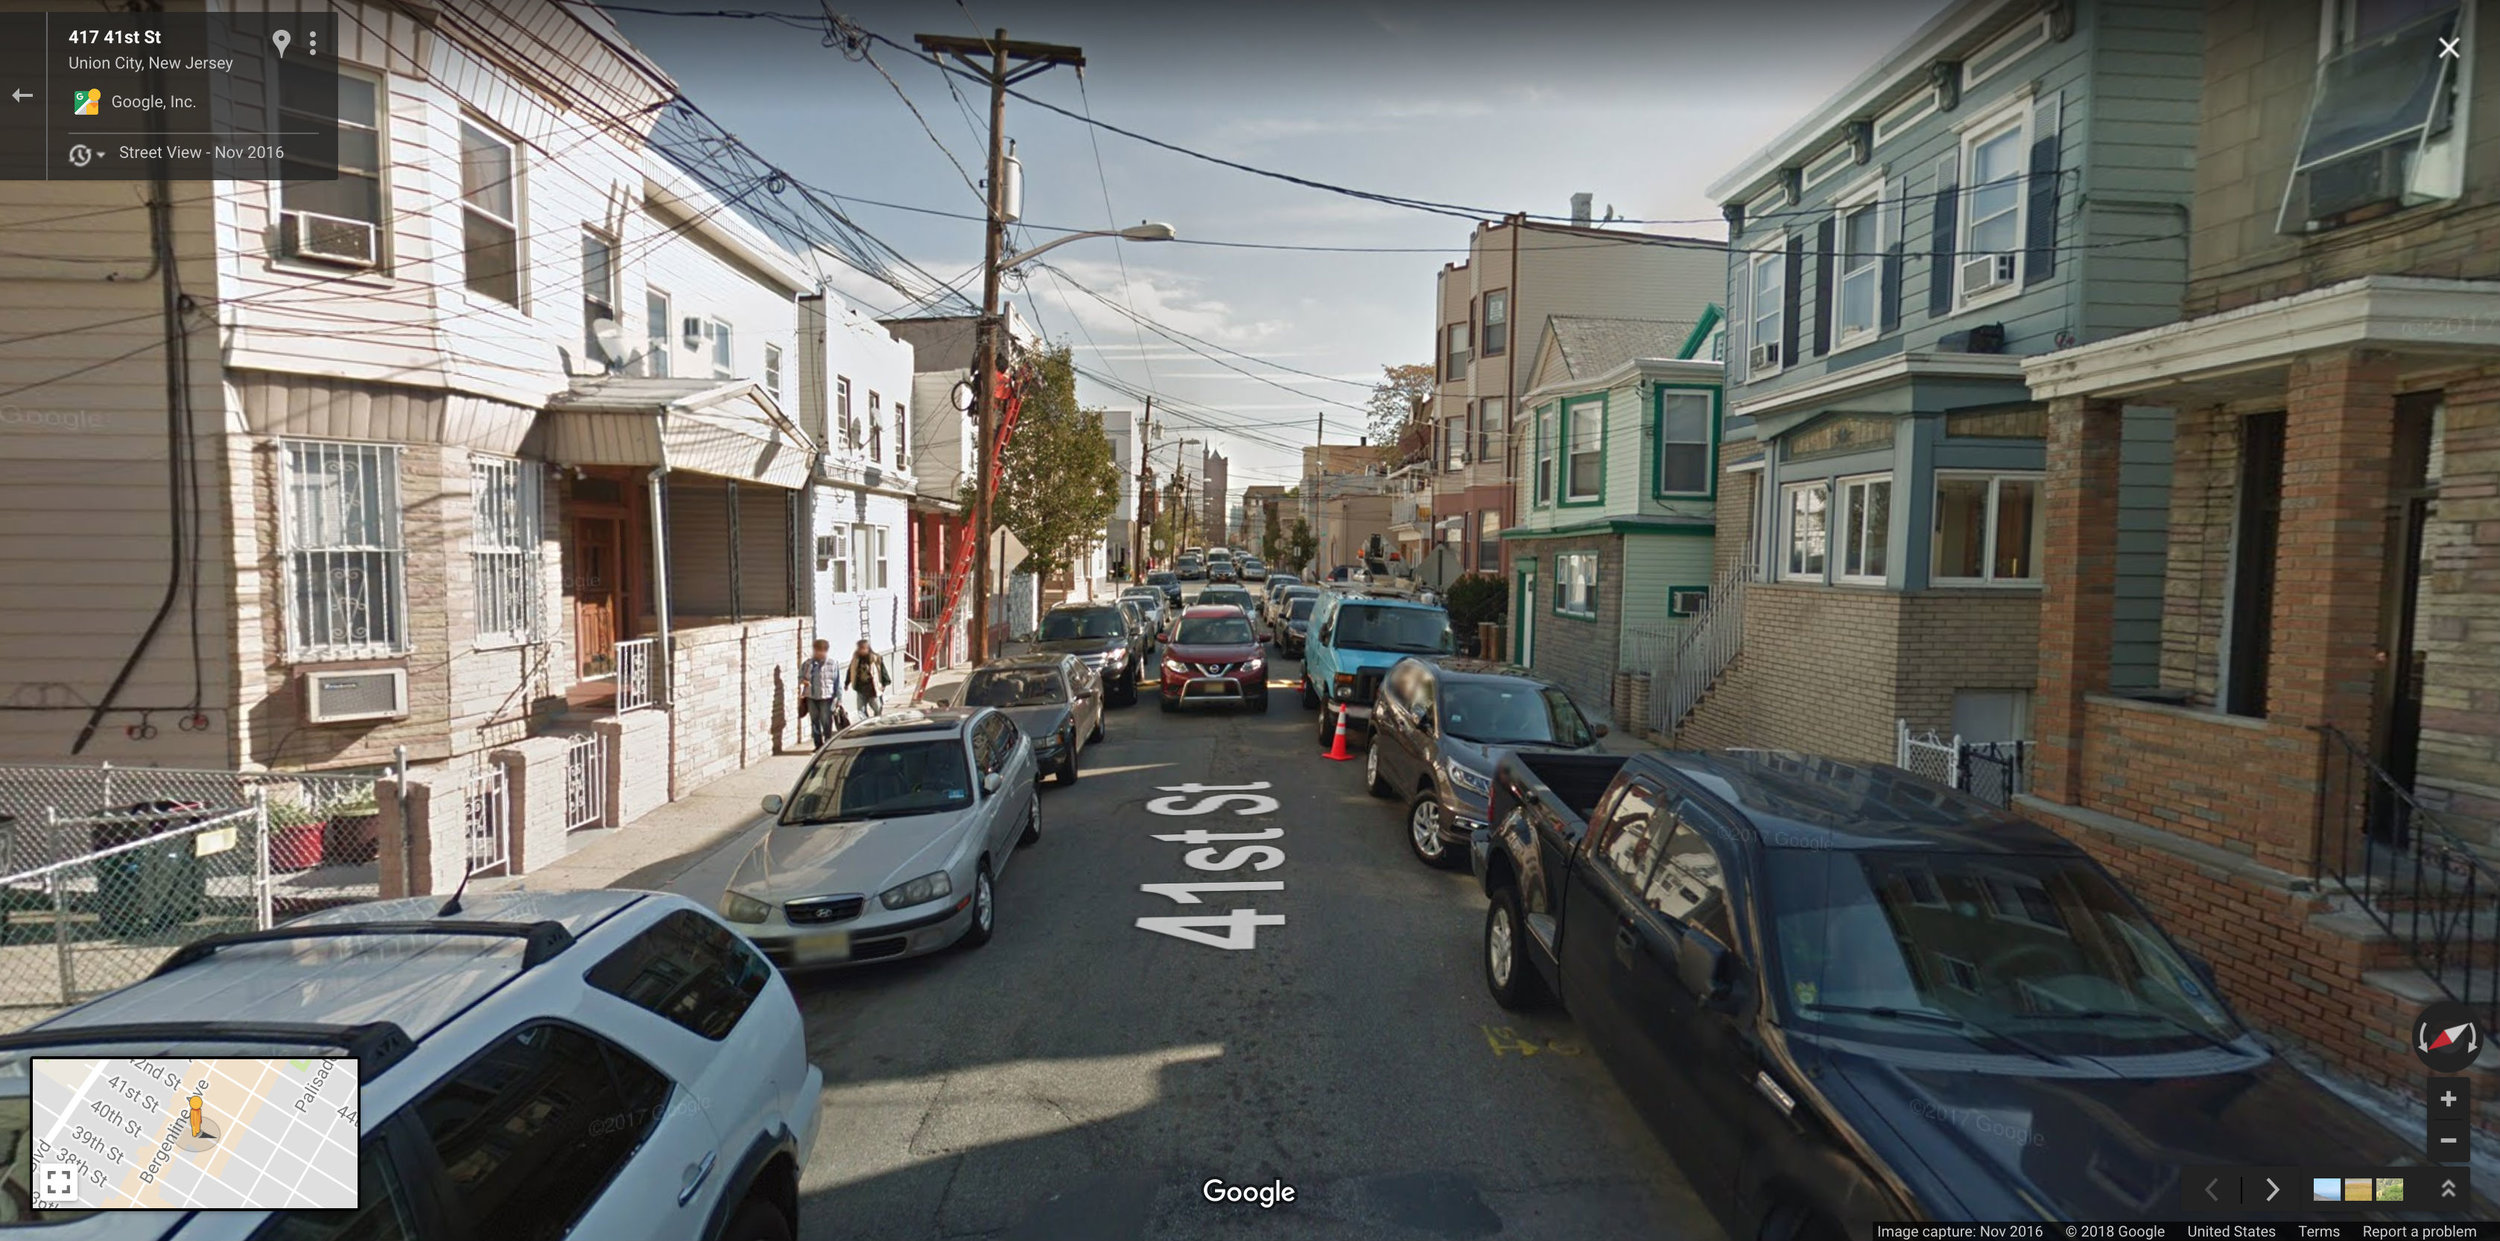 What 51,810 people per square mile looks like at street level.